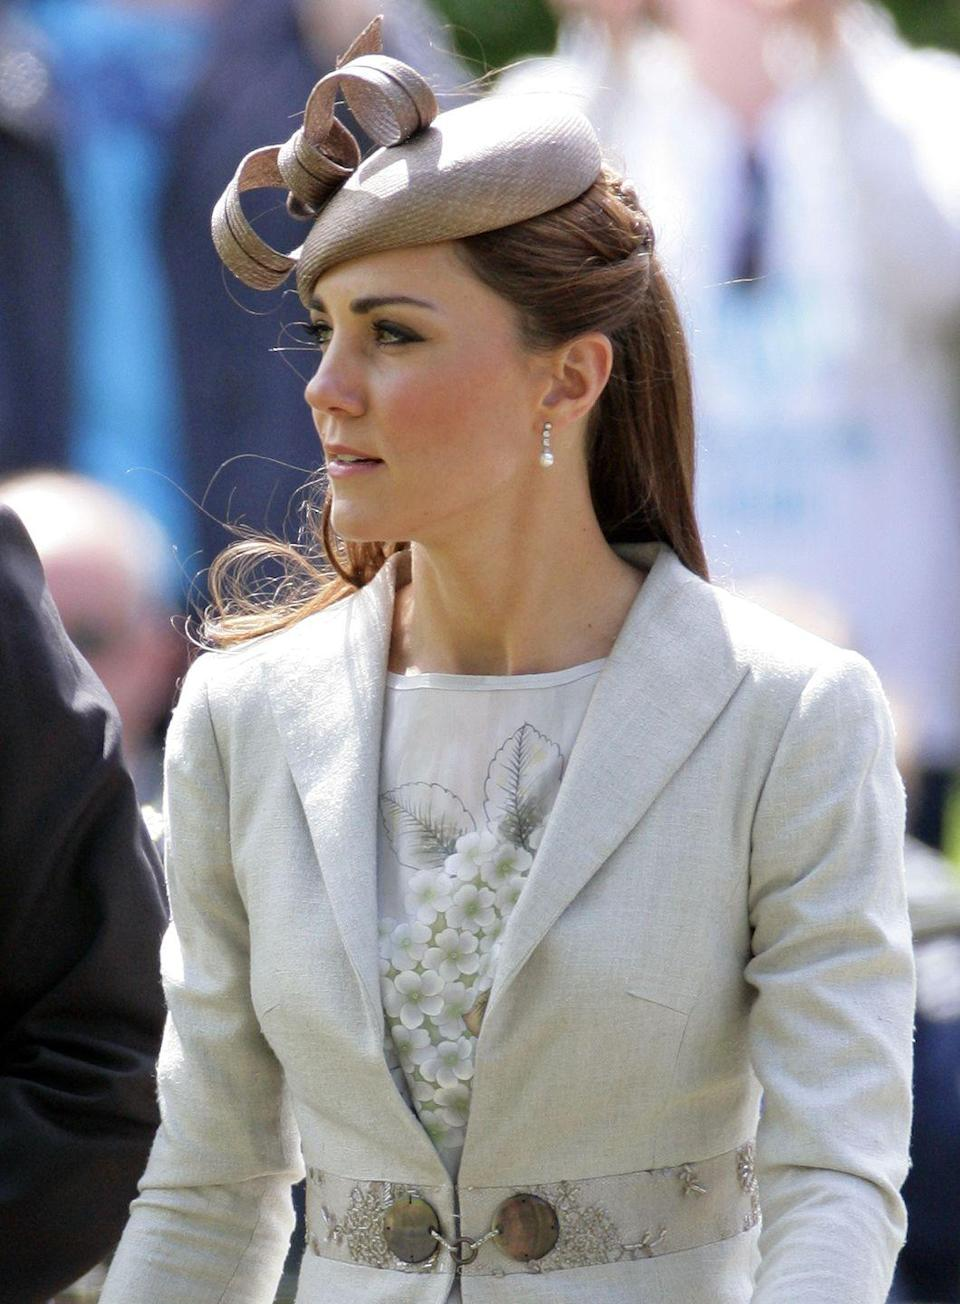 <p>She wore it a second time to attend the wedding of Emily McCorquodale and James Hutt in Grantham, England. </p>